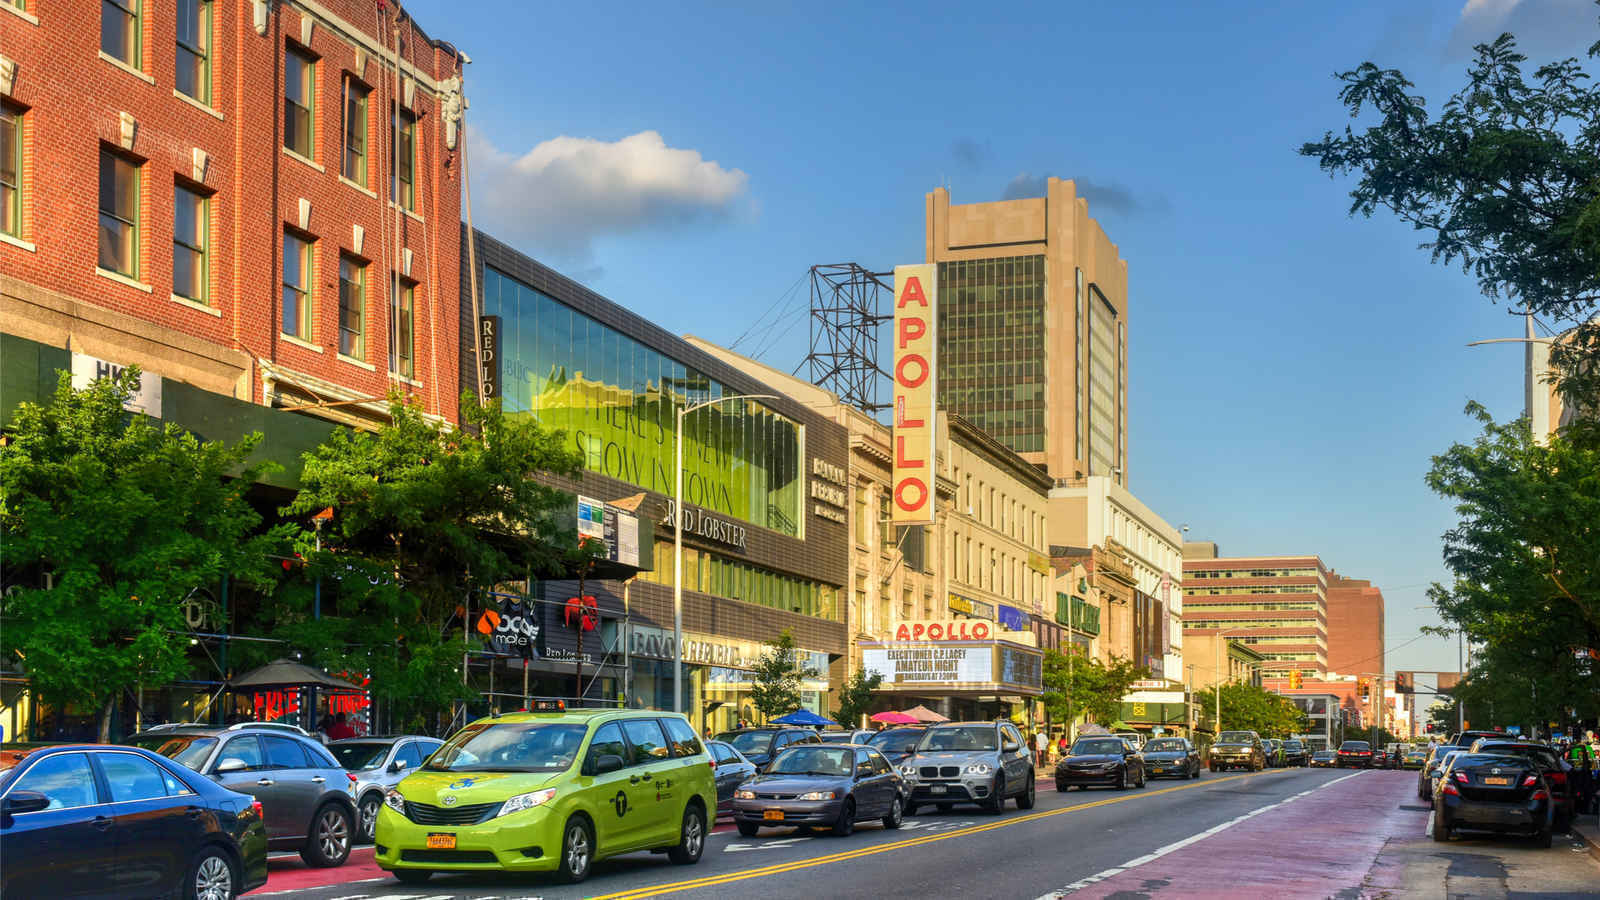 Panorama of Apollo Theater on Martin Luther King Jr Blvd, Harlem, New York